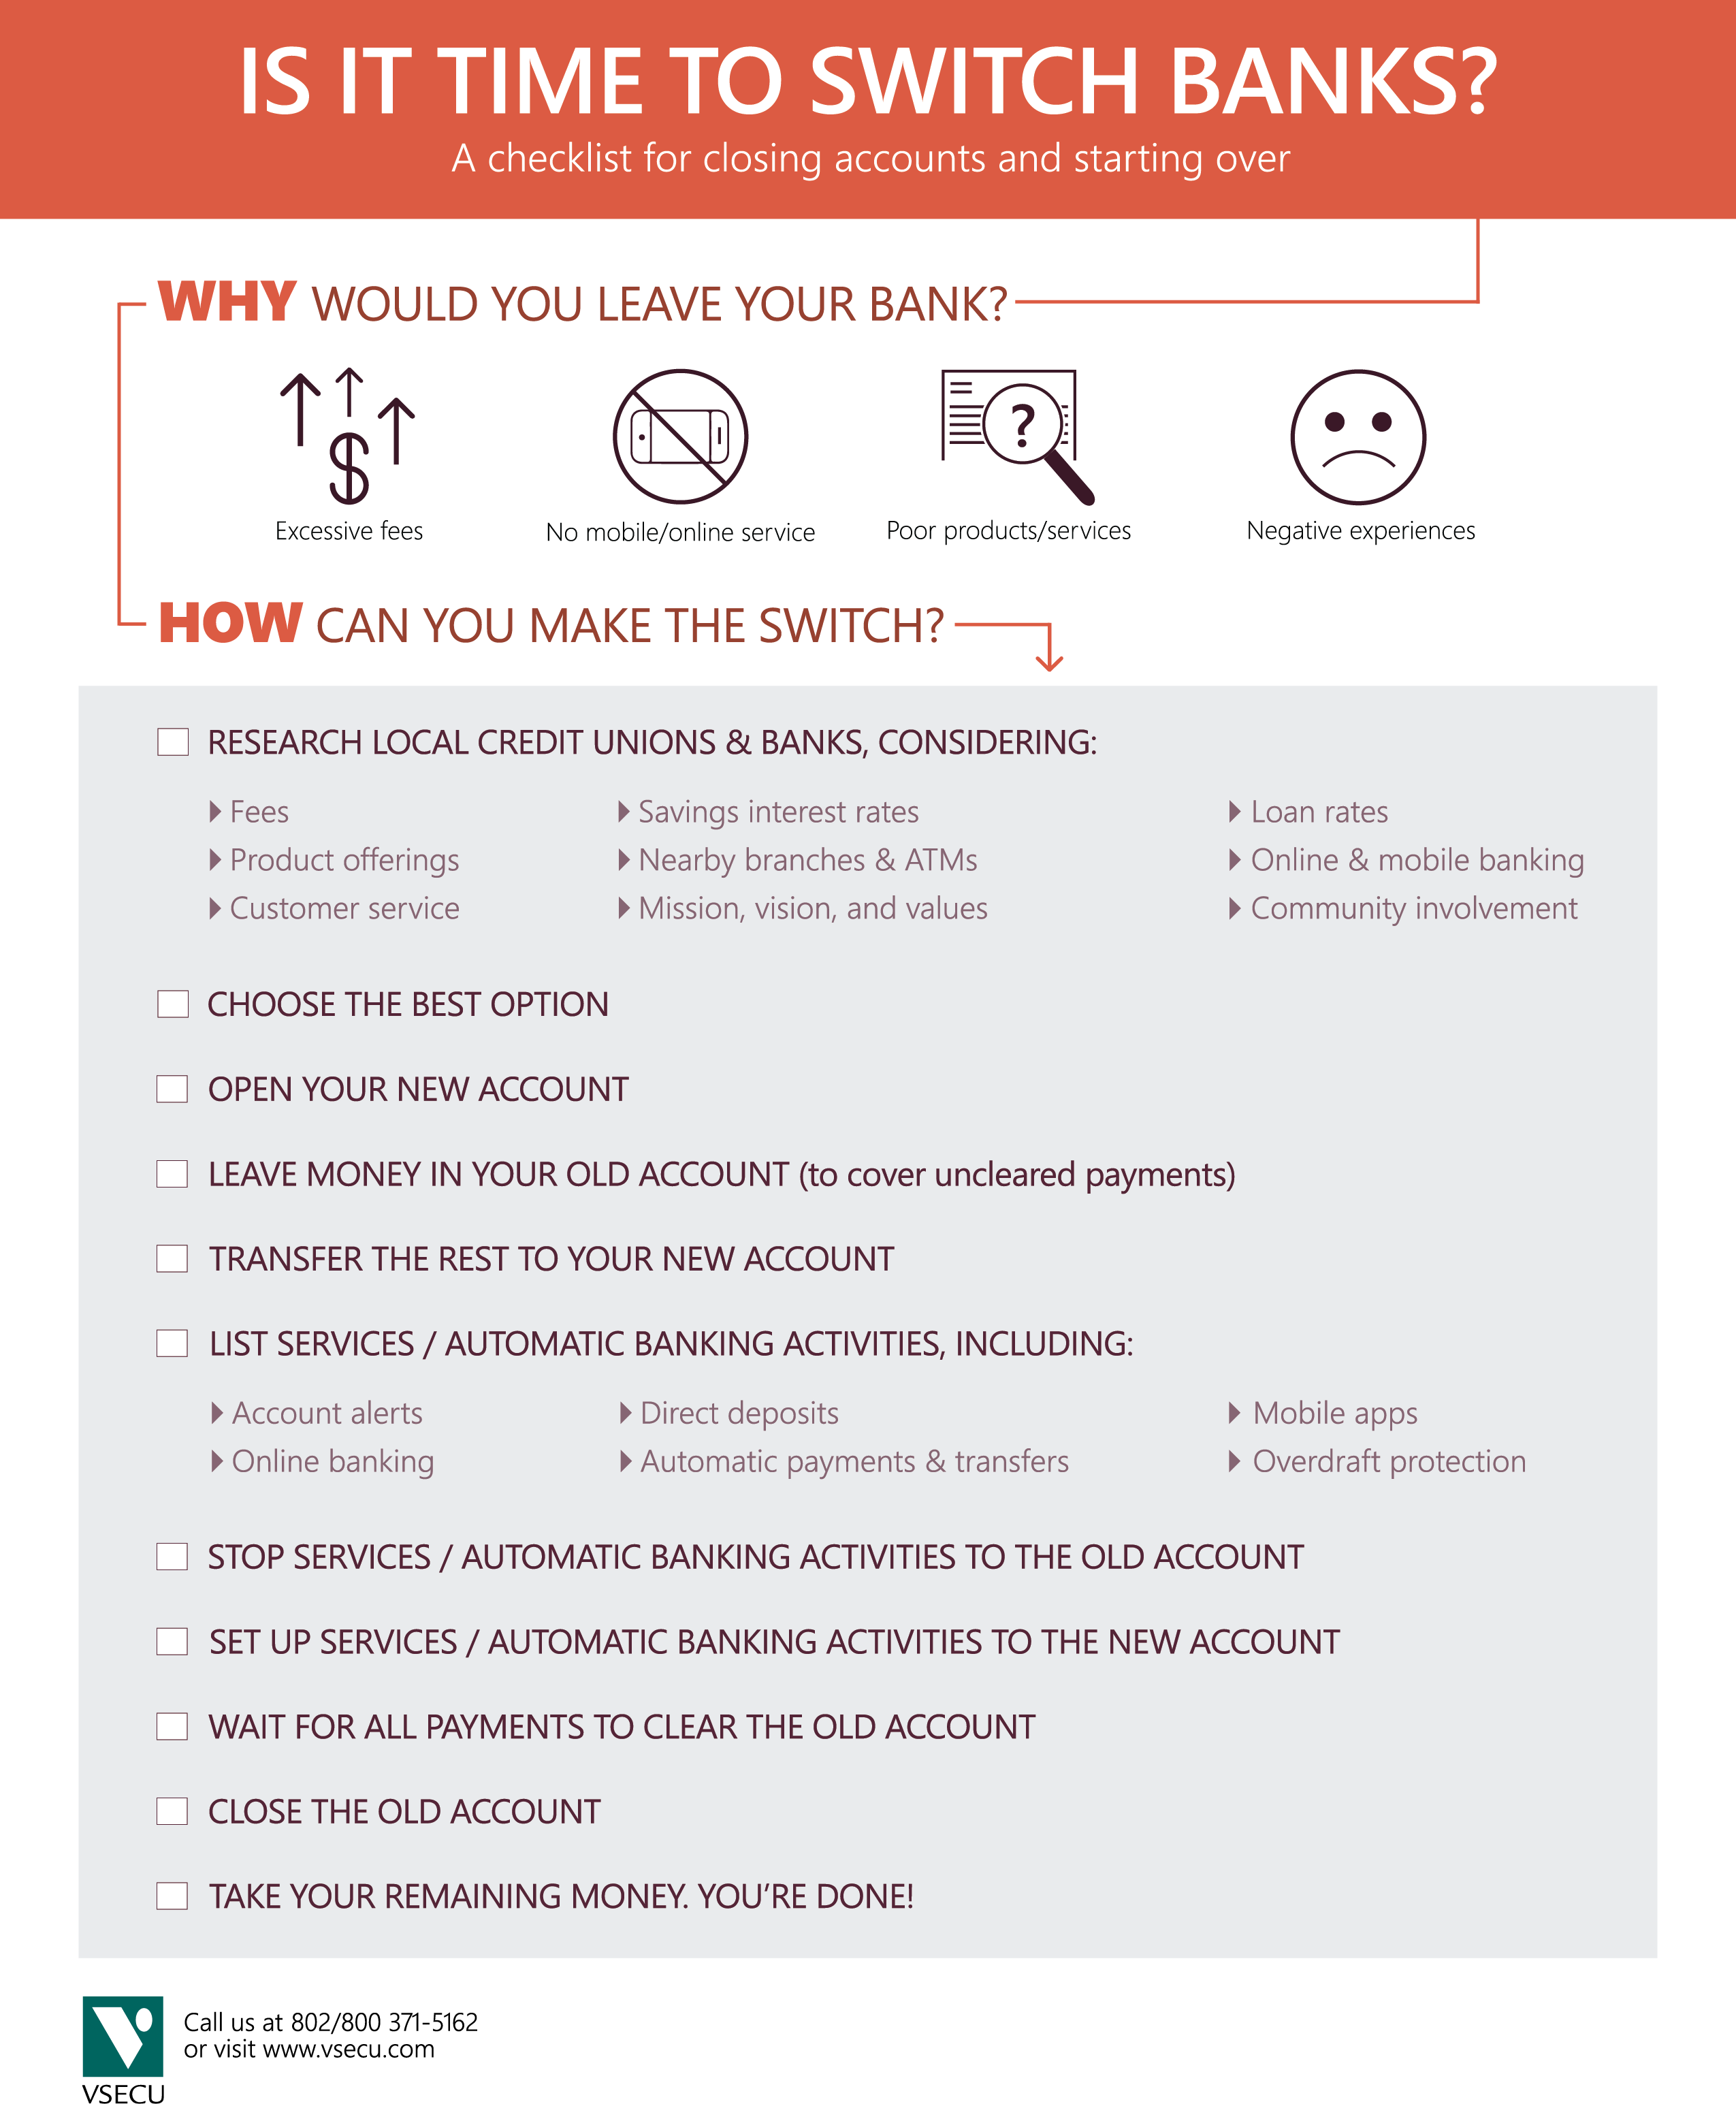 Is it Time to Switch Banks checklist FINAL1.png